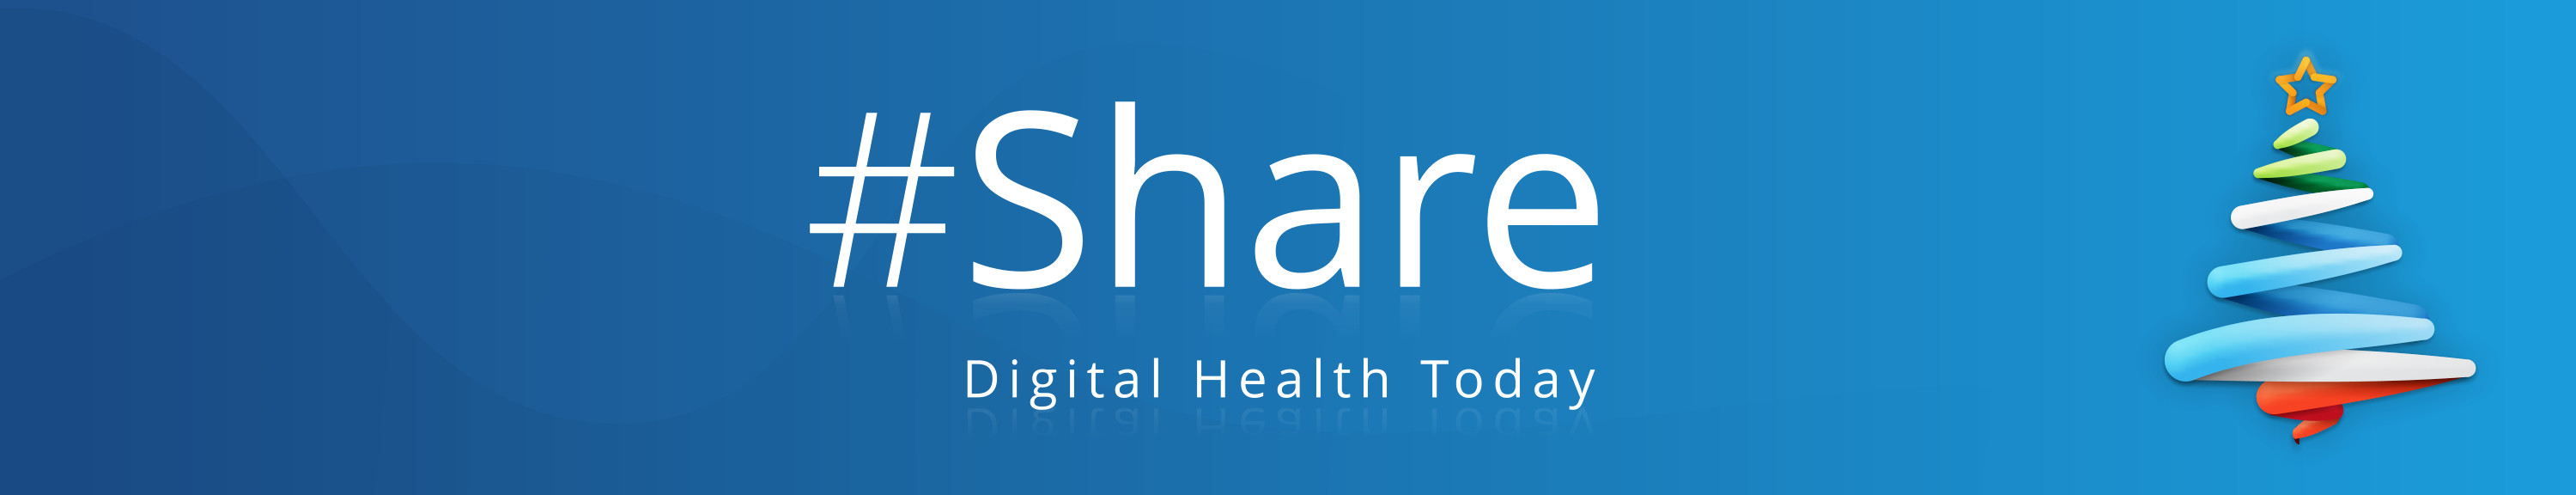 Digital Health Today banner